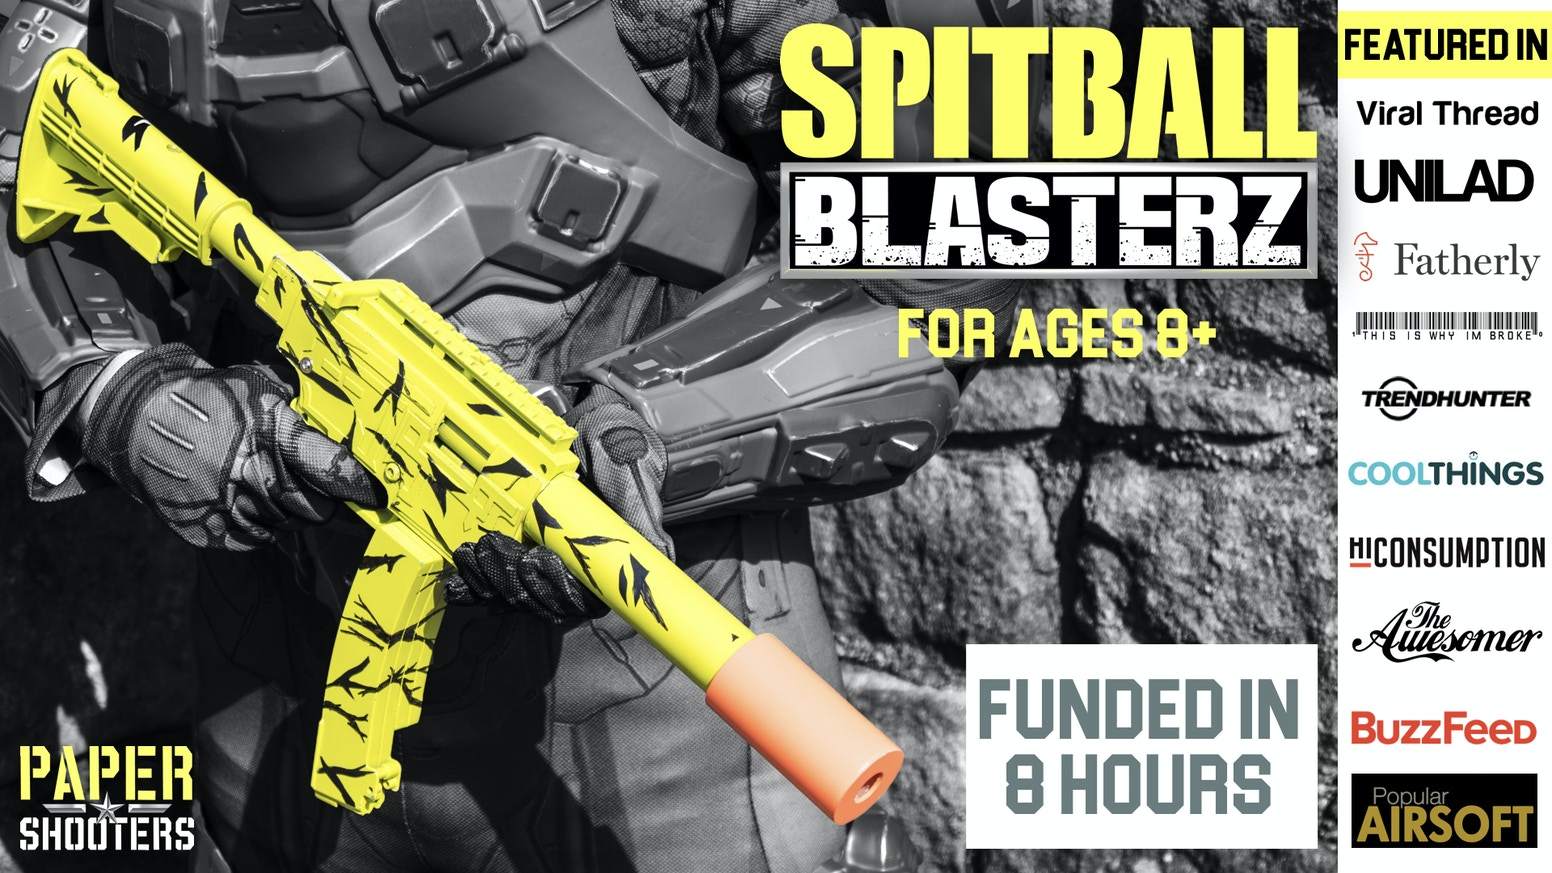 16 shots without reloading, ejecting shells, and 100% biodegradable ammo made from ordinary tissue paper. For Ages 8 to 99